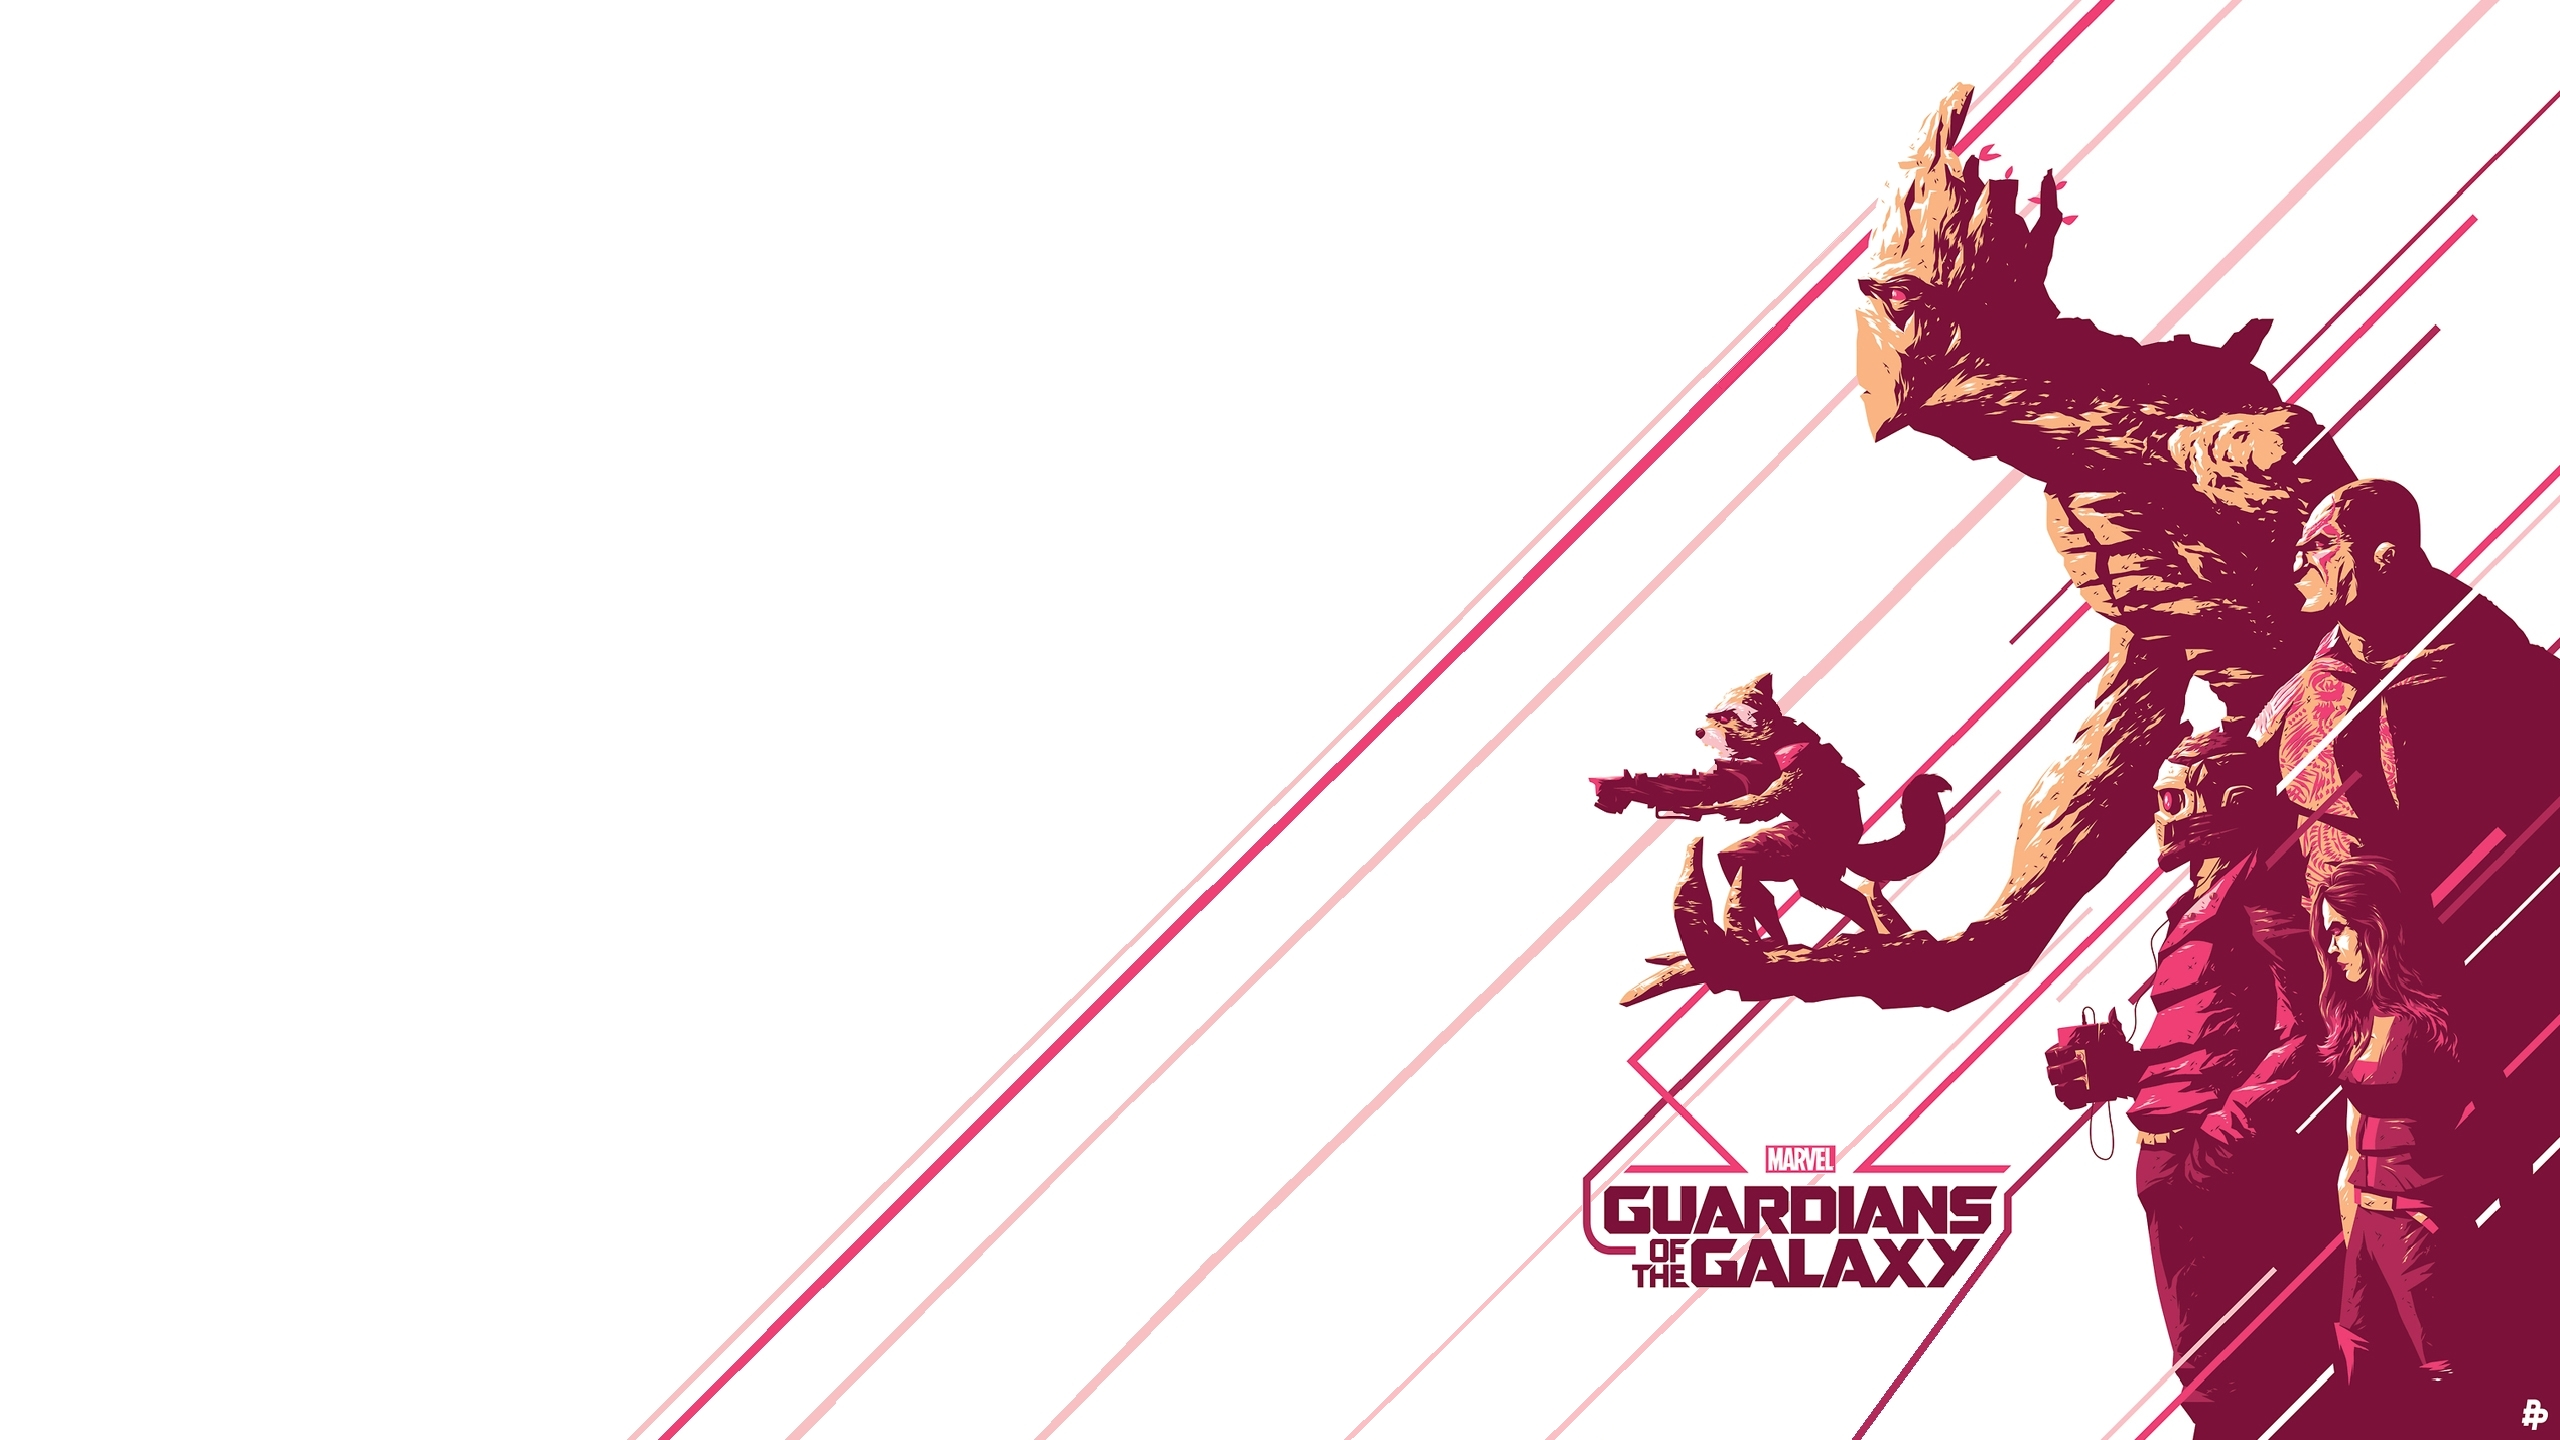 Guardians Of The Galaxy Wallpapers Pictures Images 2560x1440